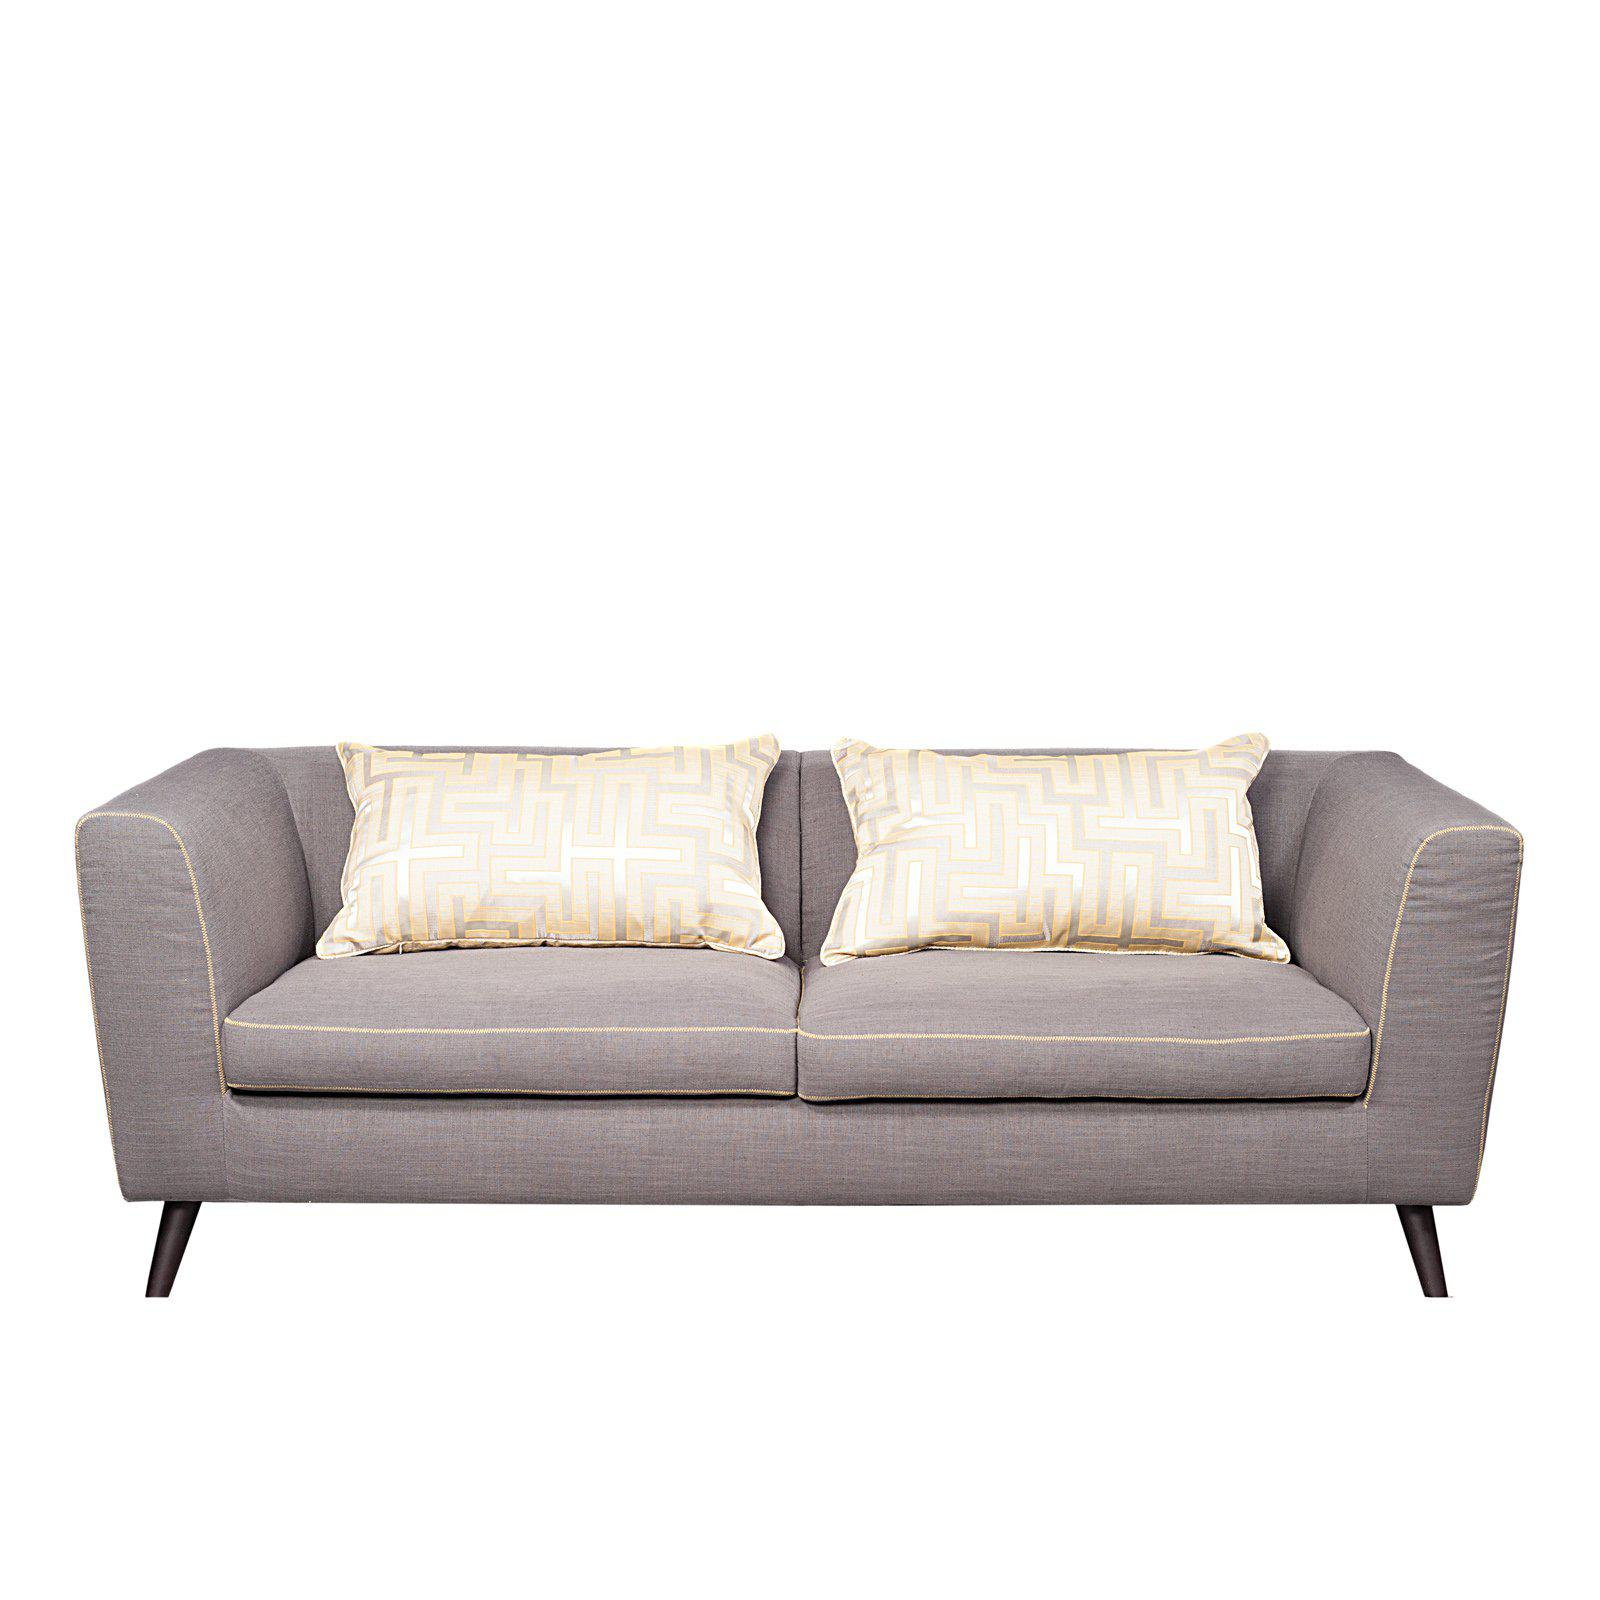 Sofa Set Grau Gray Modern Sofa Set Marvin